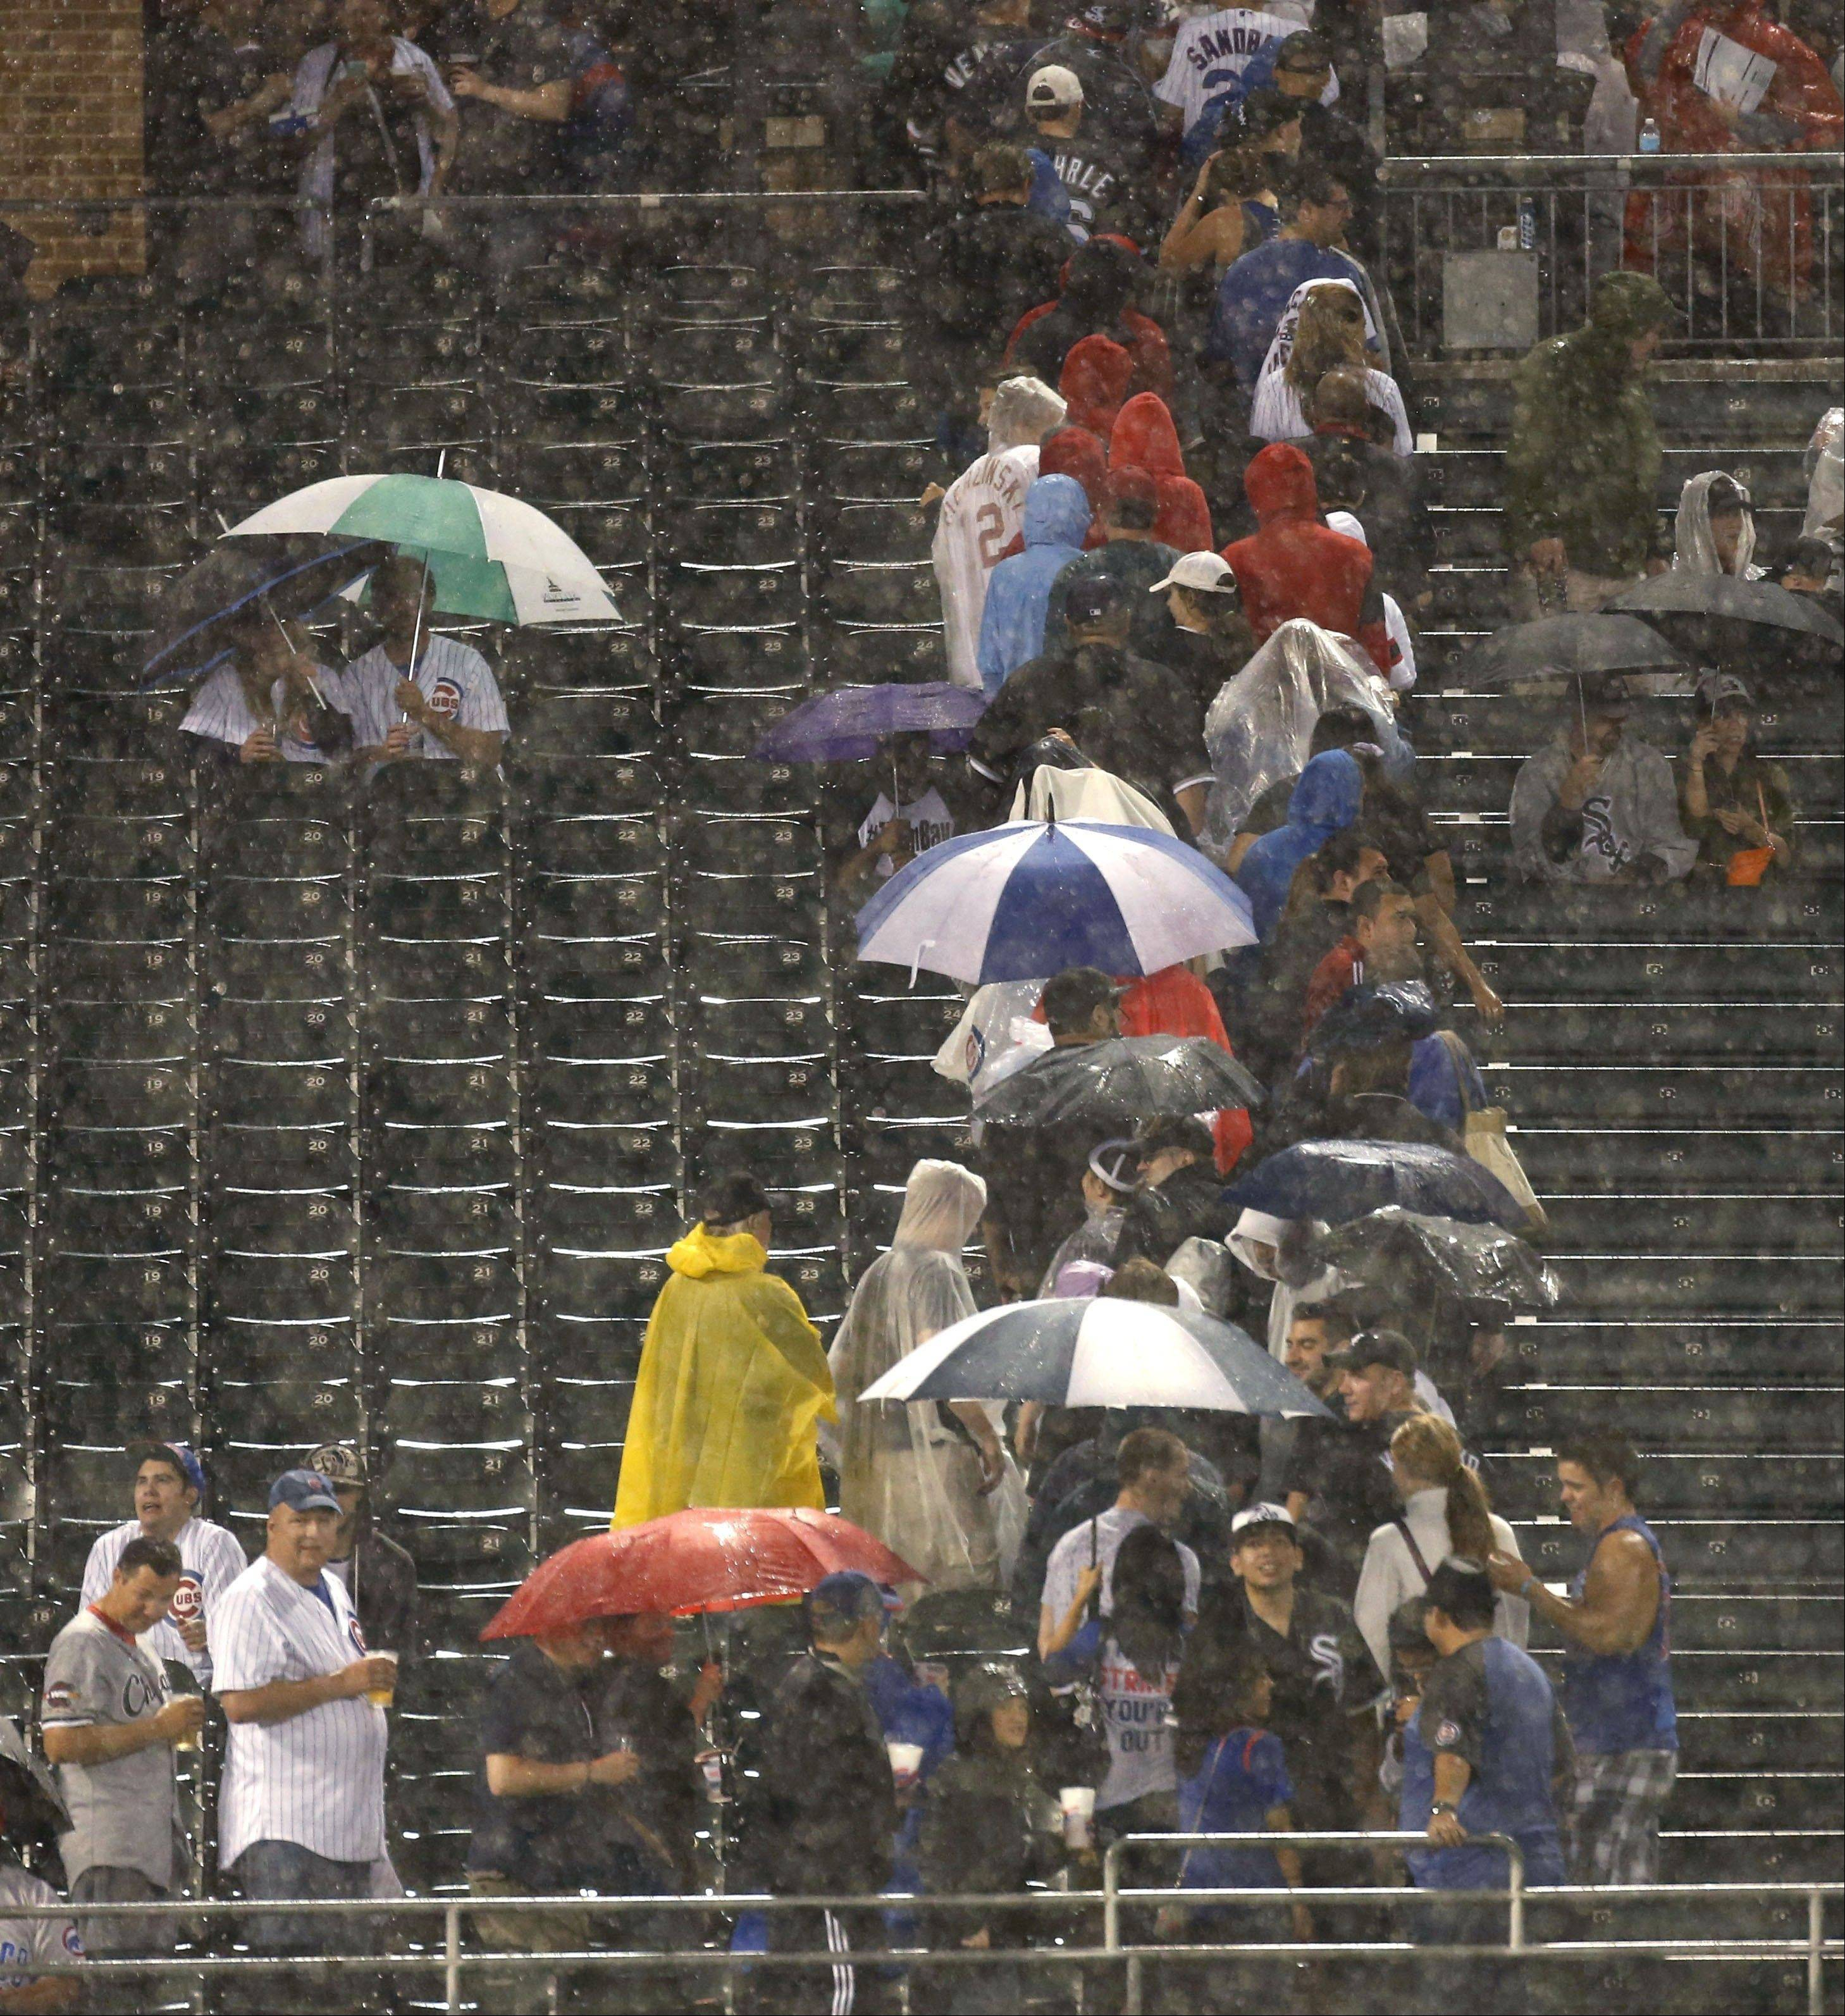 Some baseball fans seek shelter during a downpour in the third inning of an interleague baseball game between the Chicago White Sox and the Chicago Cubs on Tuesday, May 28, 2013, in Chicago.